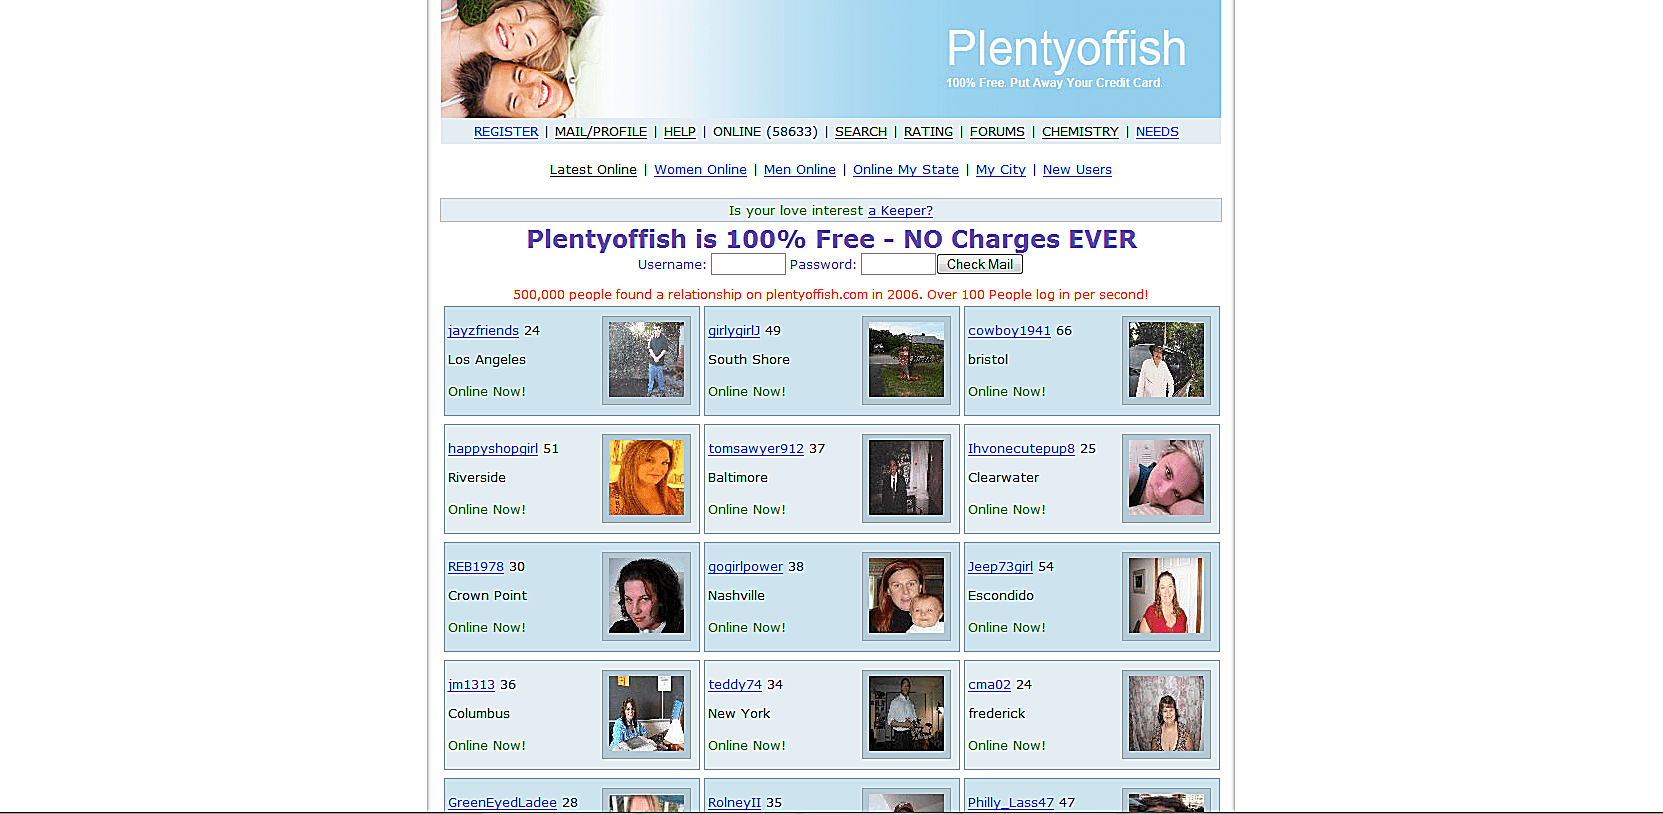 Plentyoffish free online dating sites